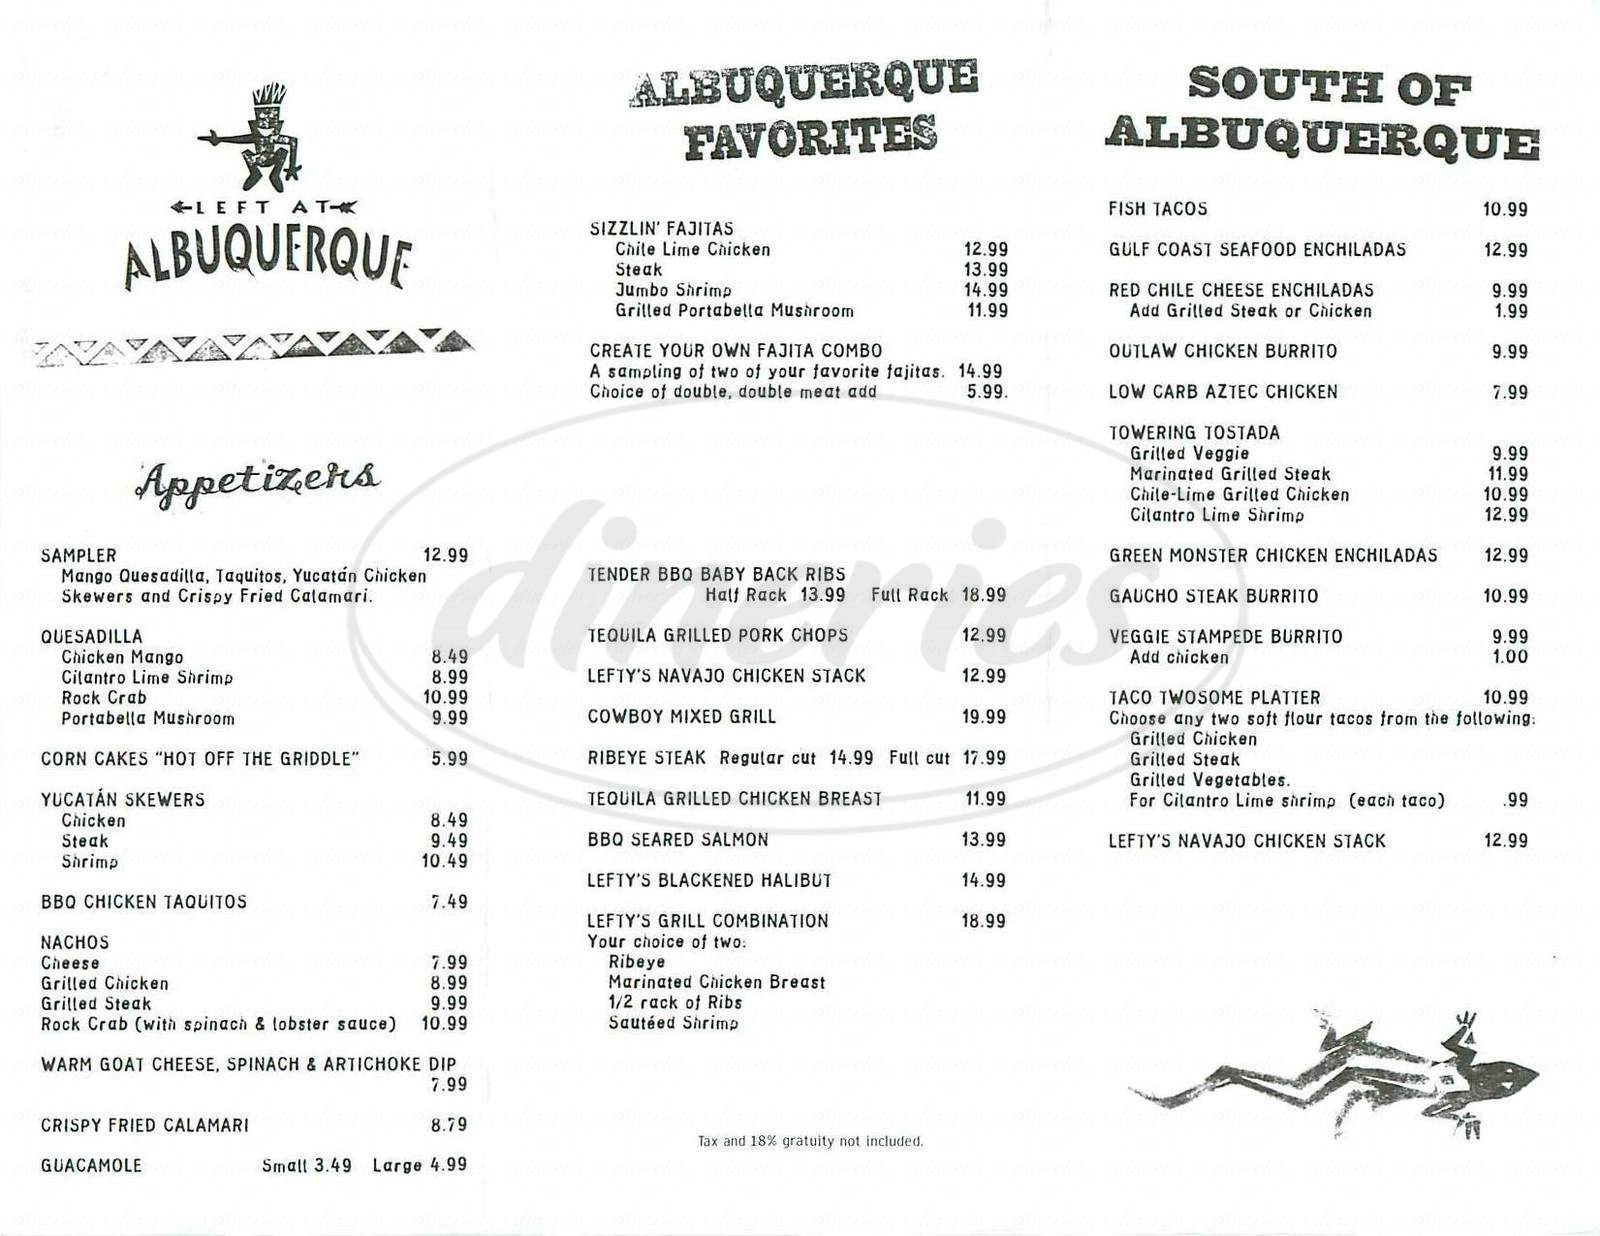 menu for Left At Albuquerque